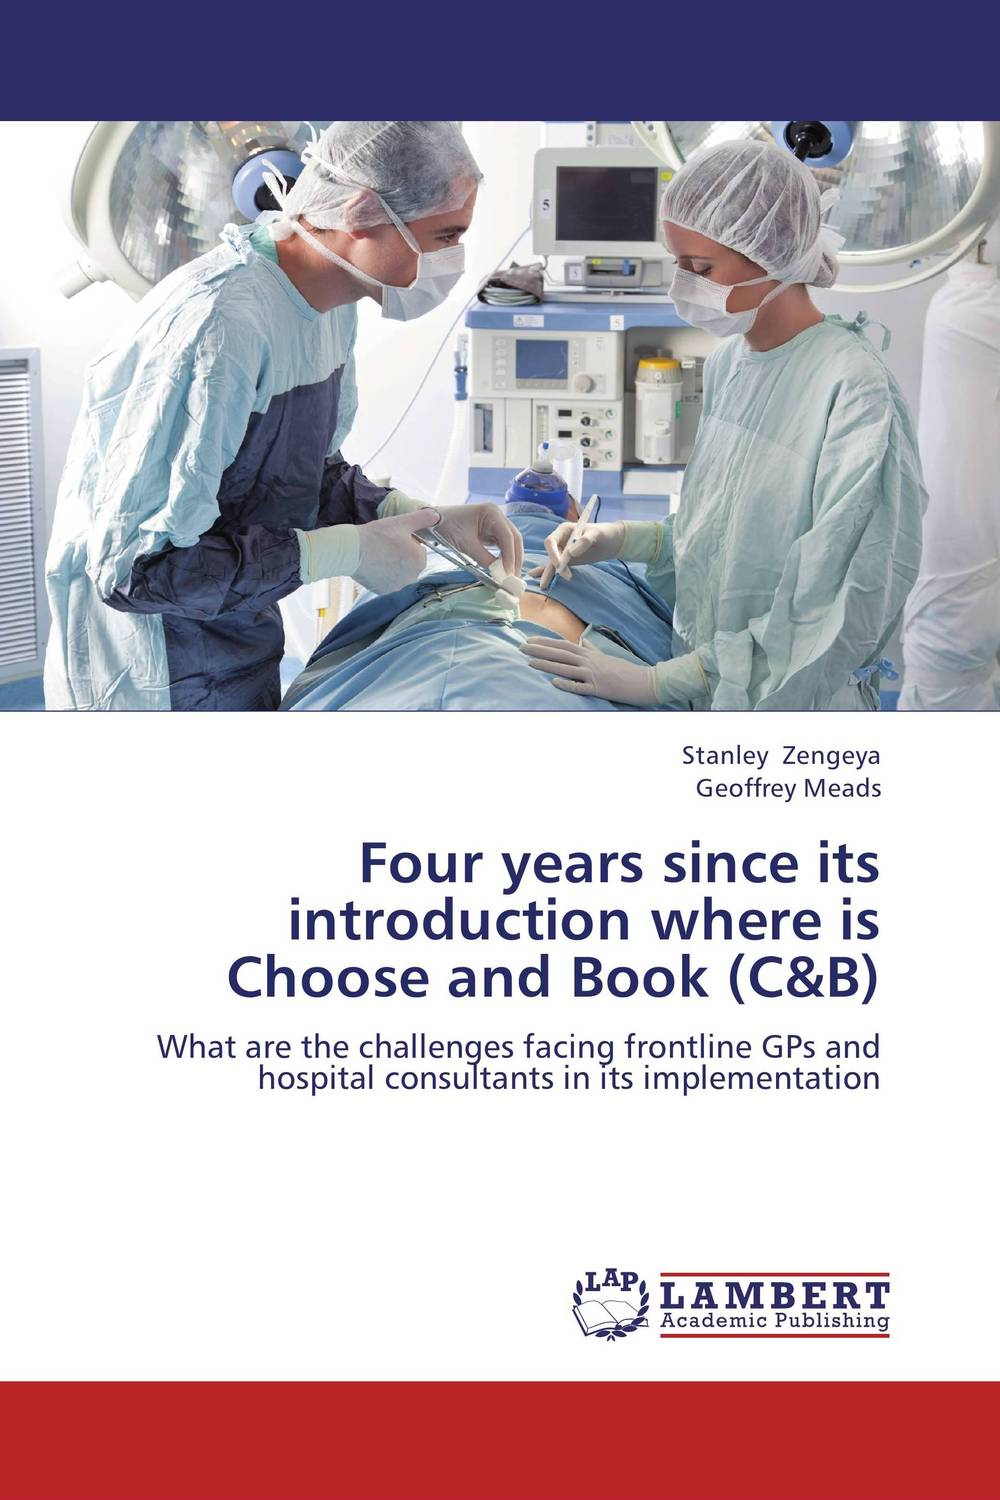 Four years since its introduction where is Choose and Book (C&B) martha kerubo obare and omosa mogambi ntabo introduction to correctional services in kenya